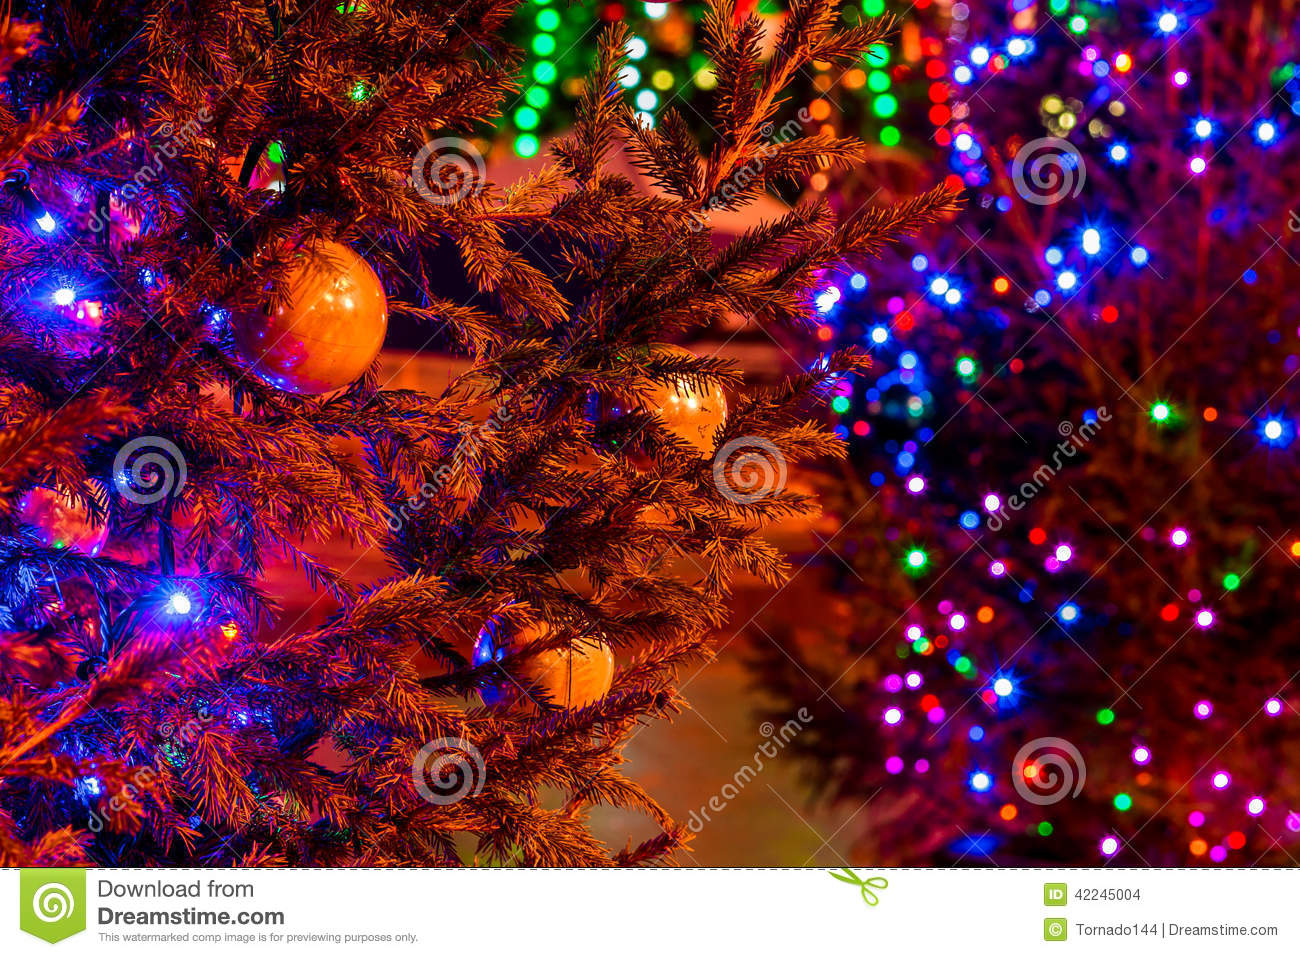 Blue Artificial Christmas Trees